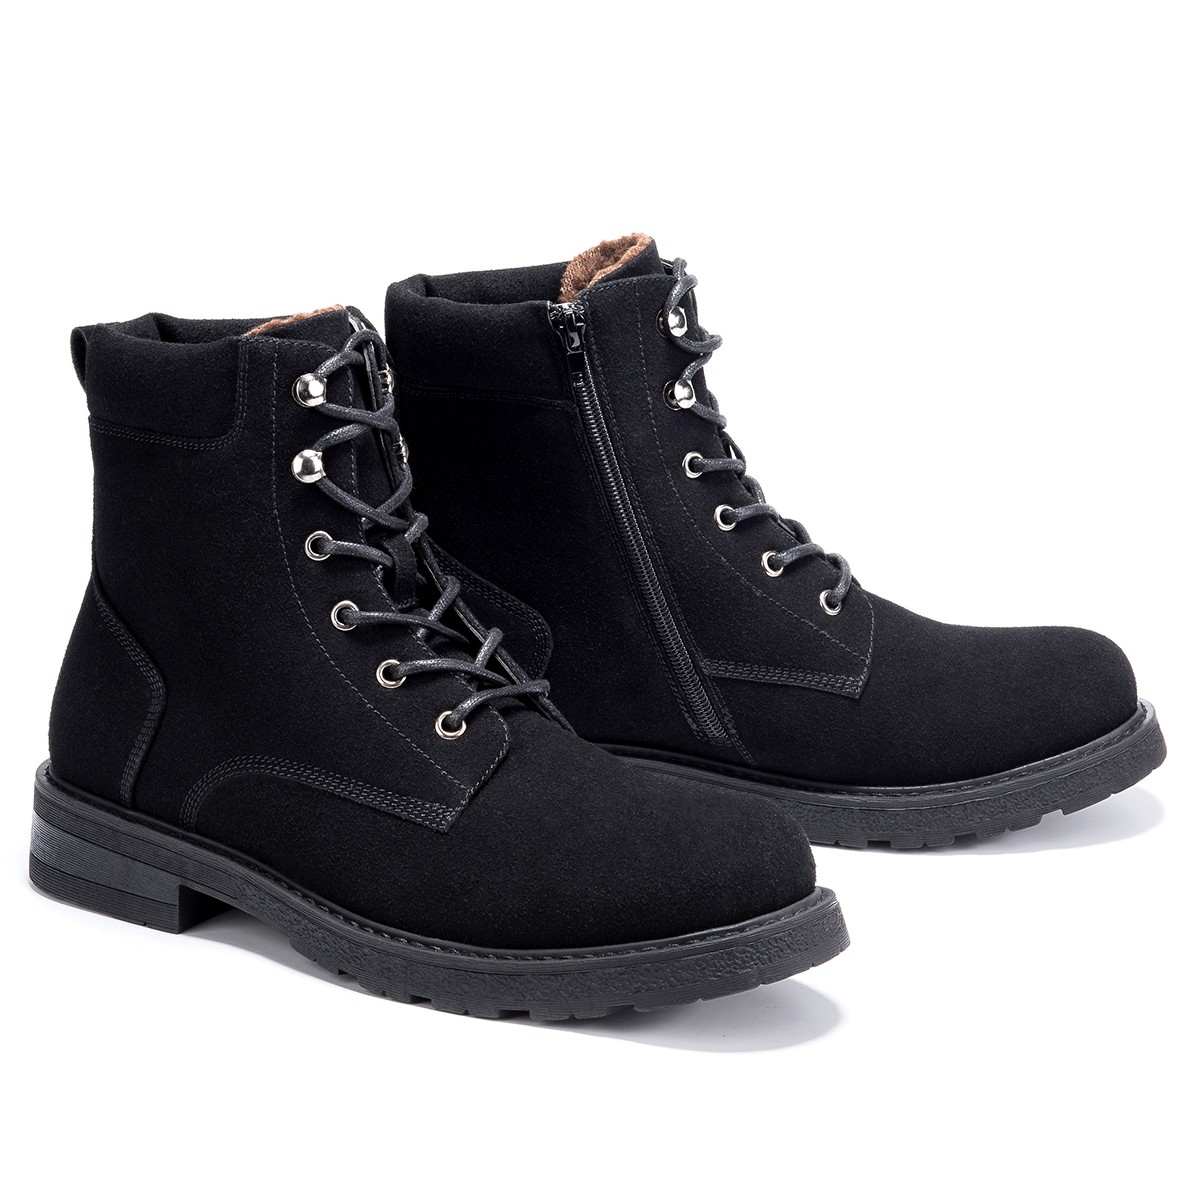 GM GoLaiman G4208 Men Boots Round Toe Casual Shoes - Black US 9